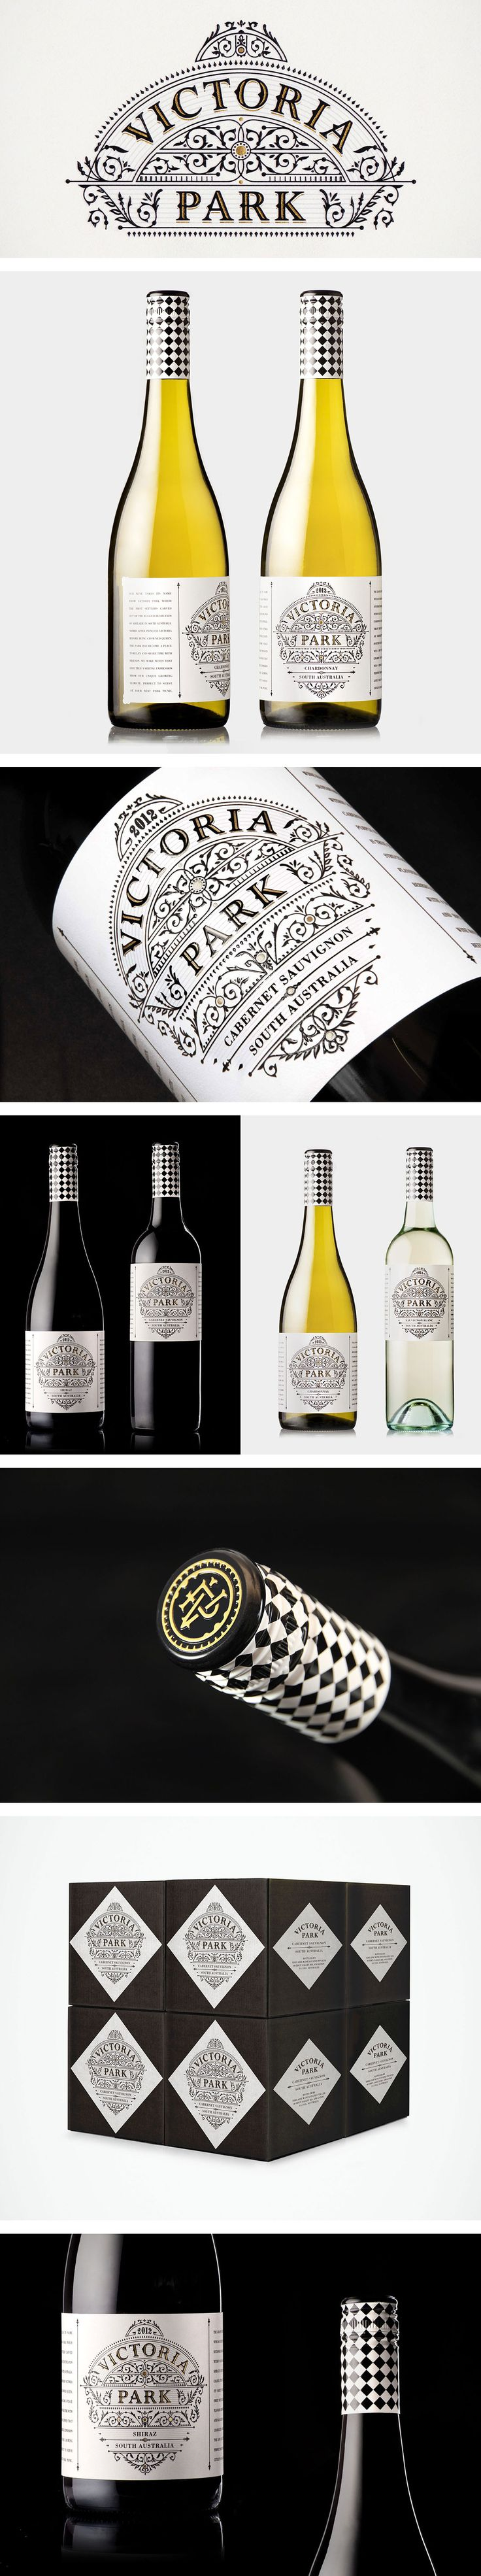 Victoria Park wine label and packaging #taninotanino #vinosmaximum #stilovino